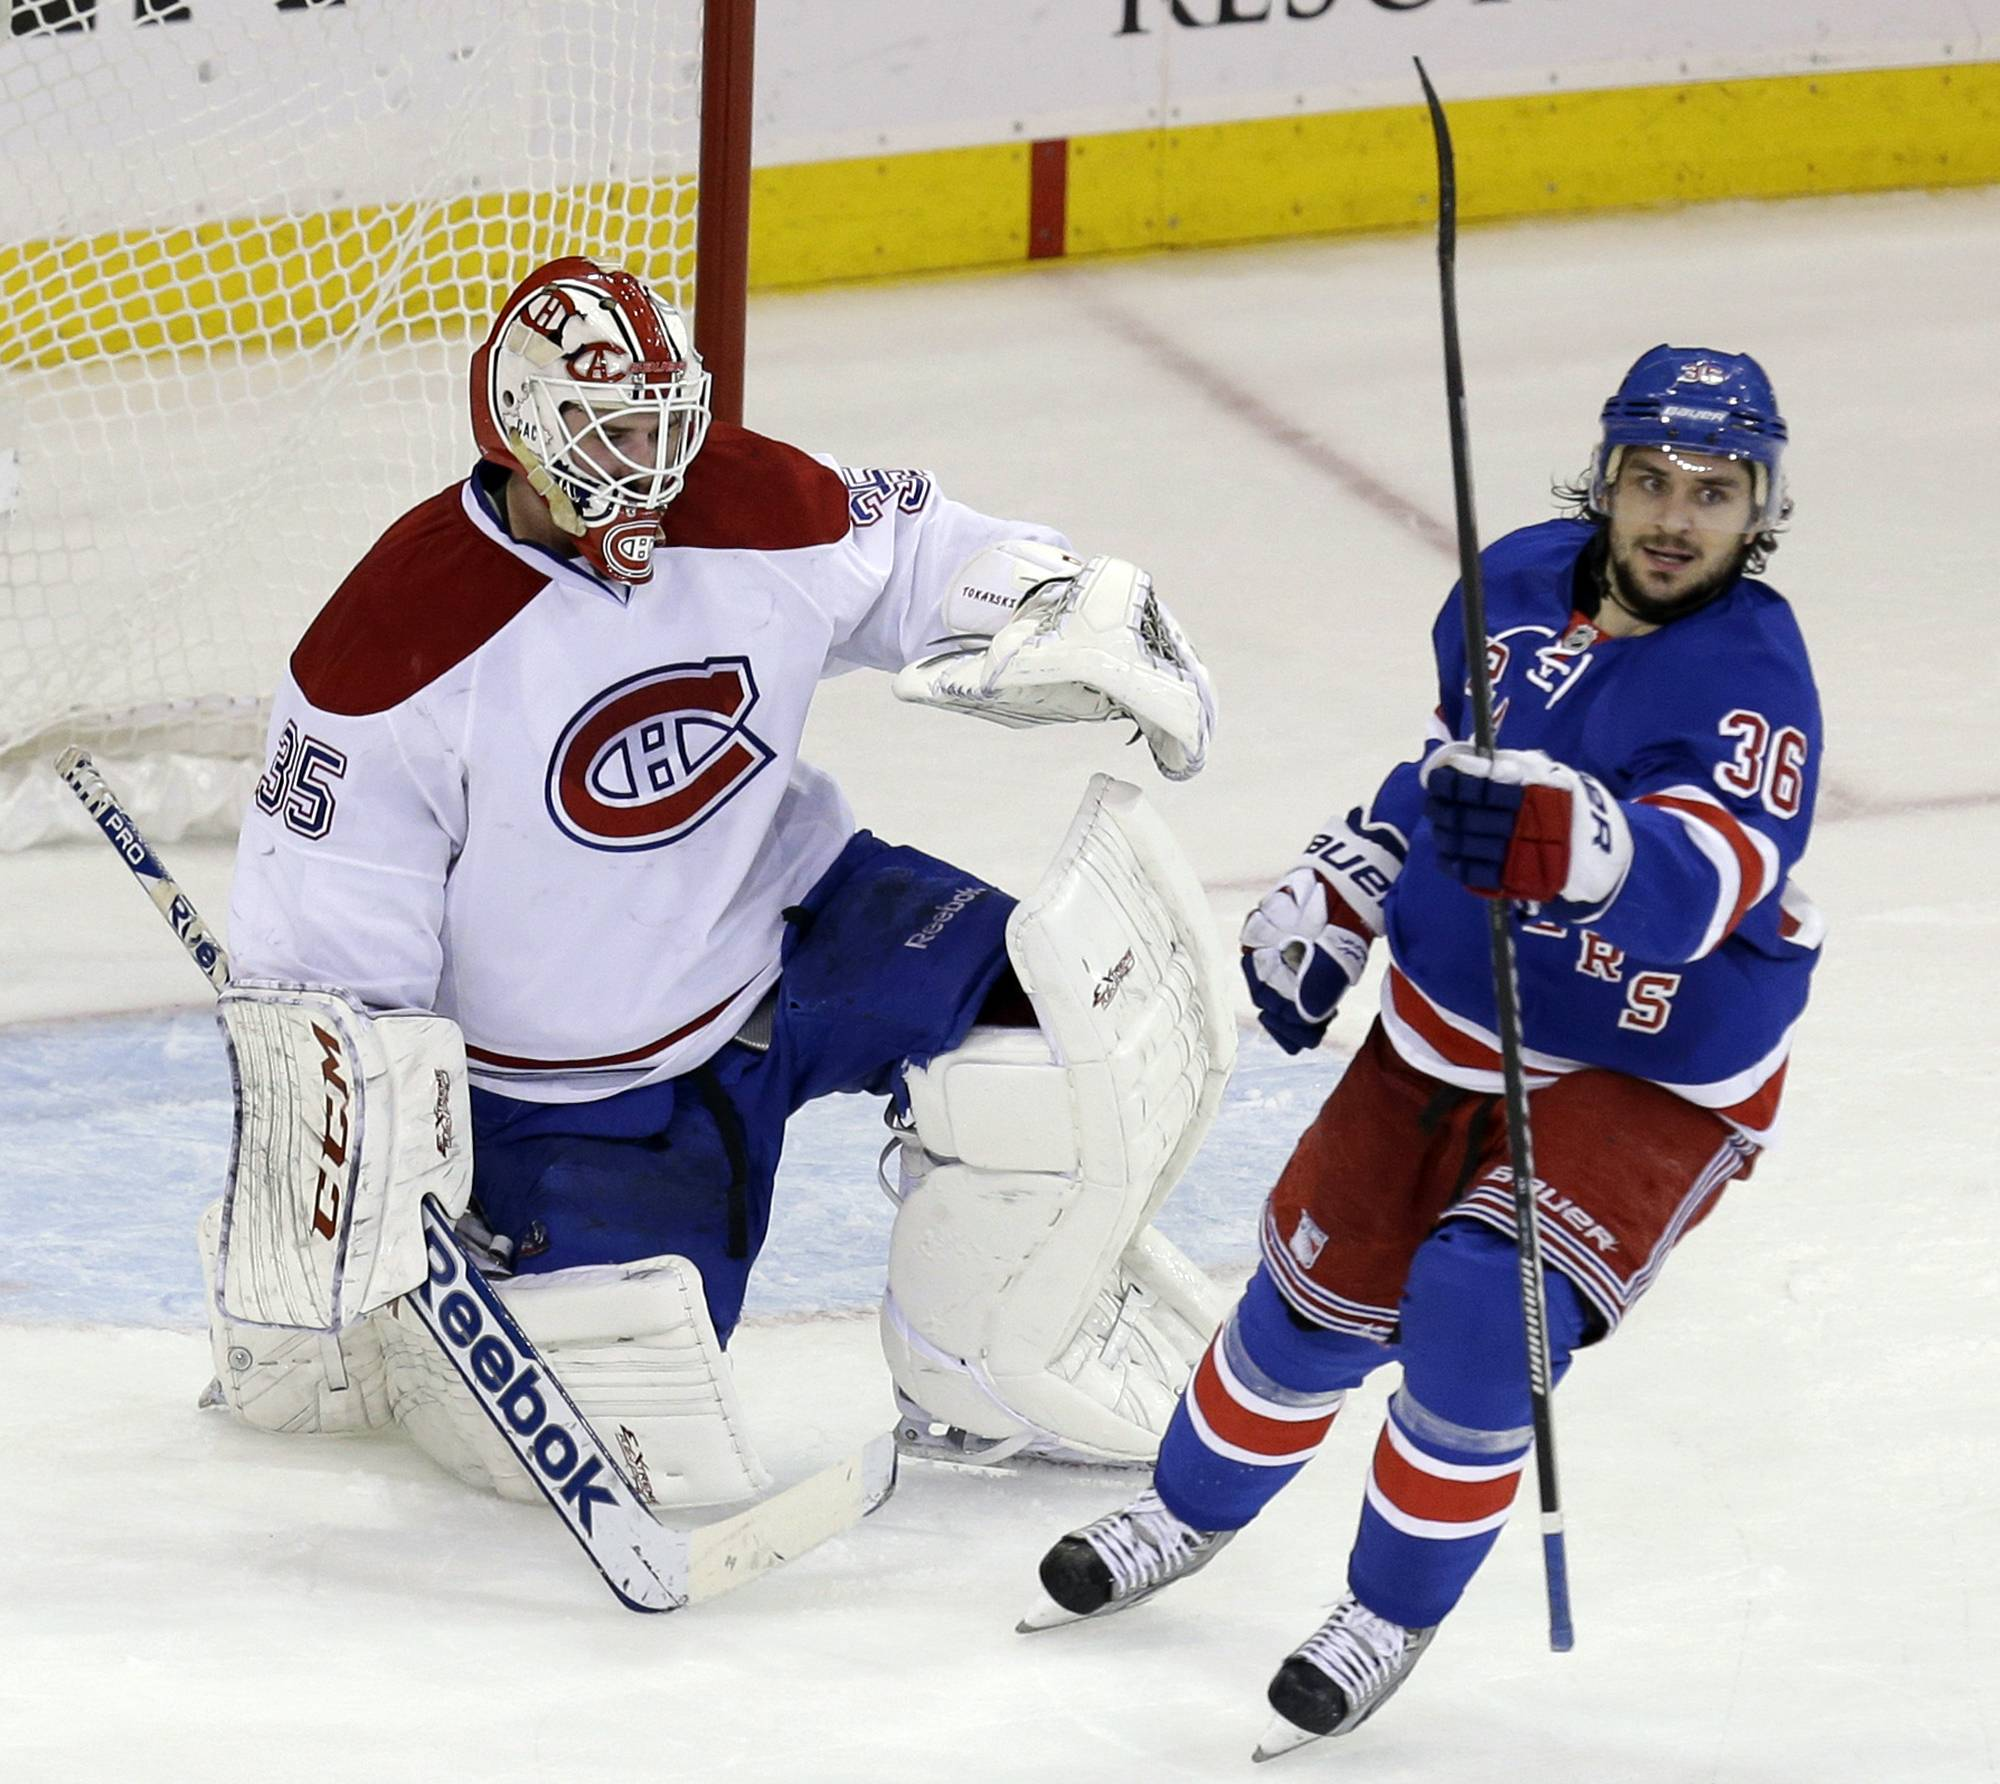 Montreal Canadiens goalie Dustin Tokarski, left, and New York Rangers' Mats Zuccarello react after New York Rangers' Derick Brassard scored during the second period of Game 4 of the NHL hockey Stanley Cup playoffs Eastern Conference finals, Sunday, May 25, 2014, in New York.